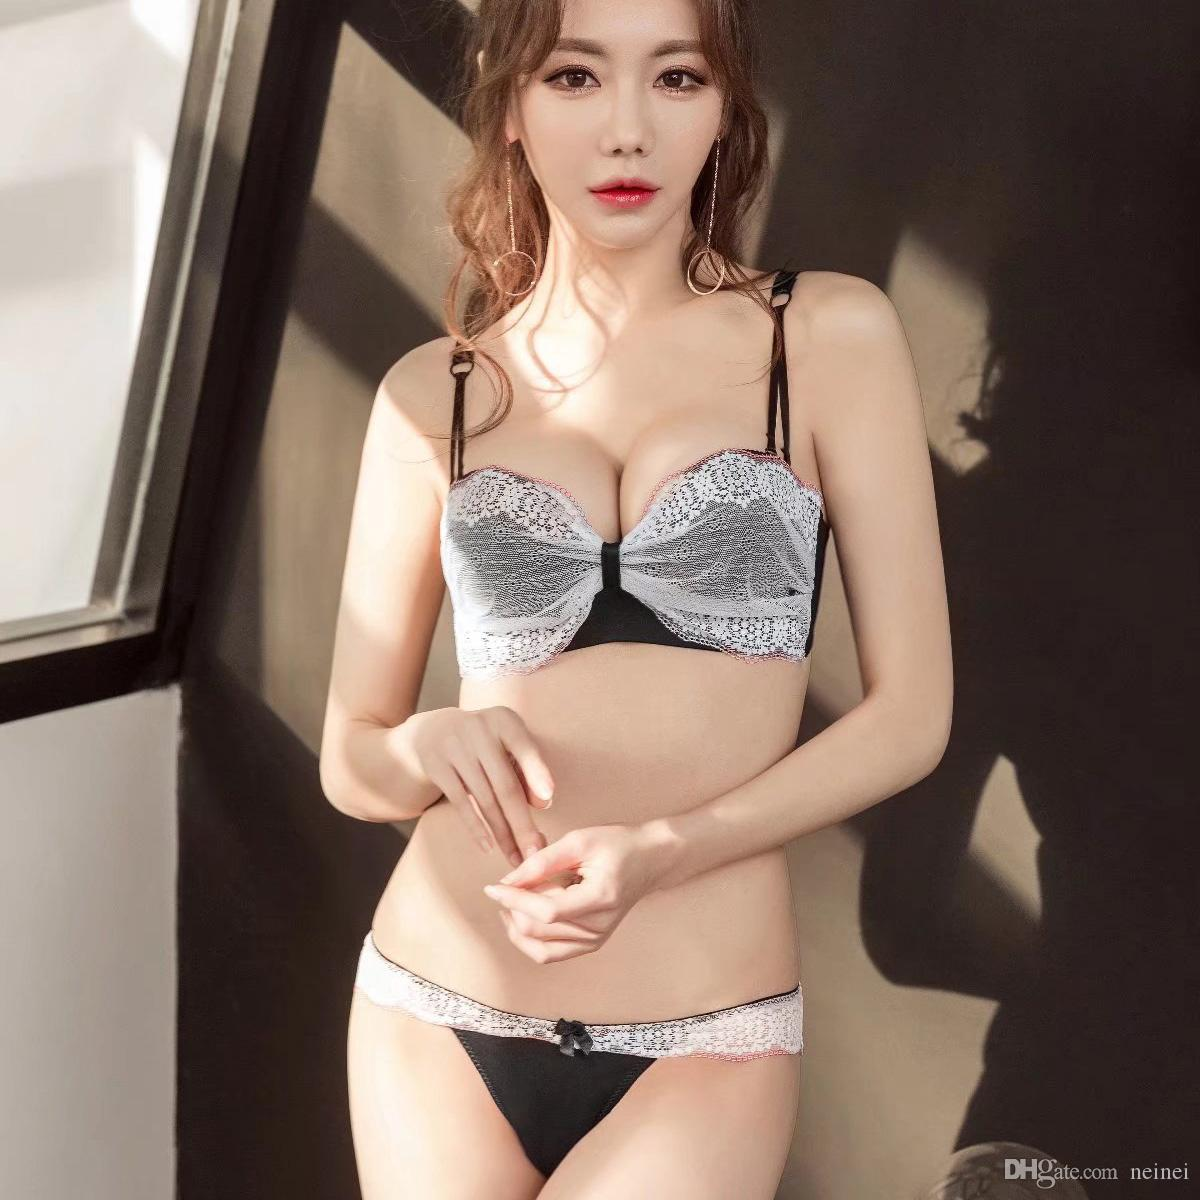 c6069ce01d 2019 Lace Thicken Push Up Intimates One Piece Seamless 1 2 Cup Bra Set Women  Fashion Young Girls Underwear Suits Transparent Panties From Neinei